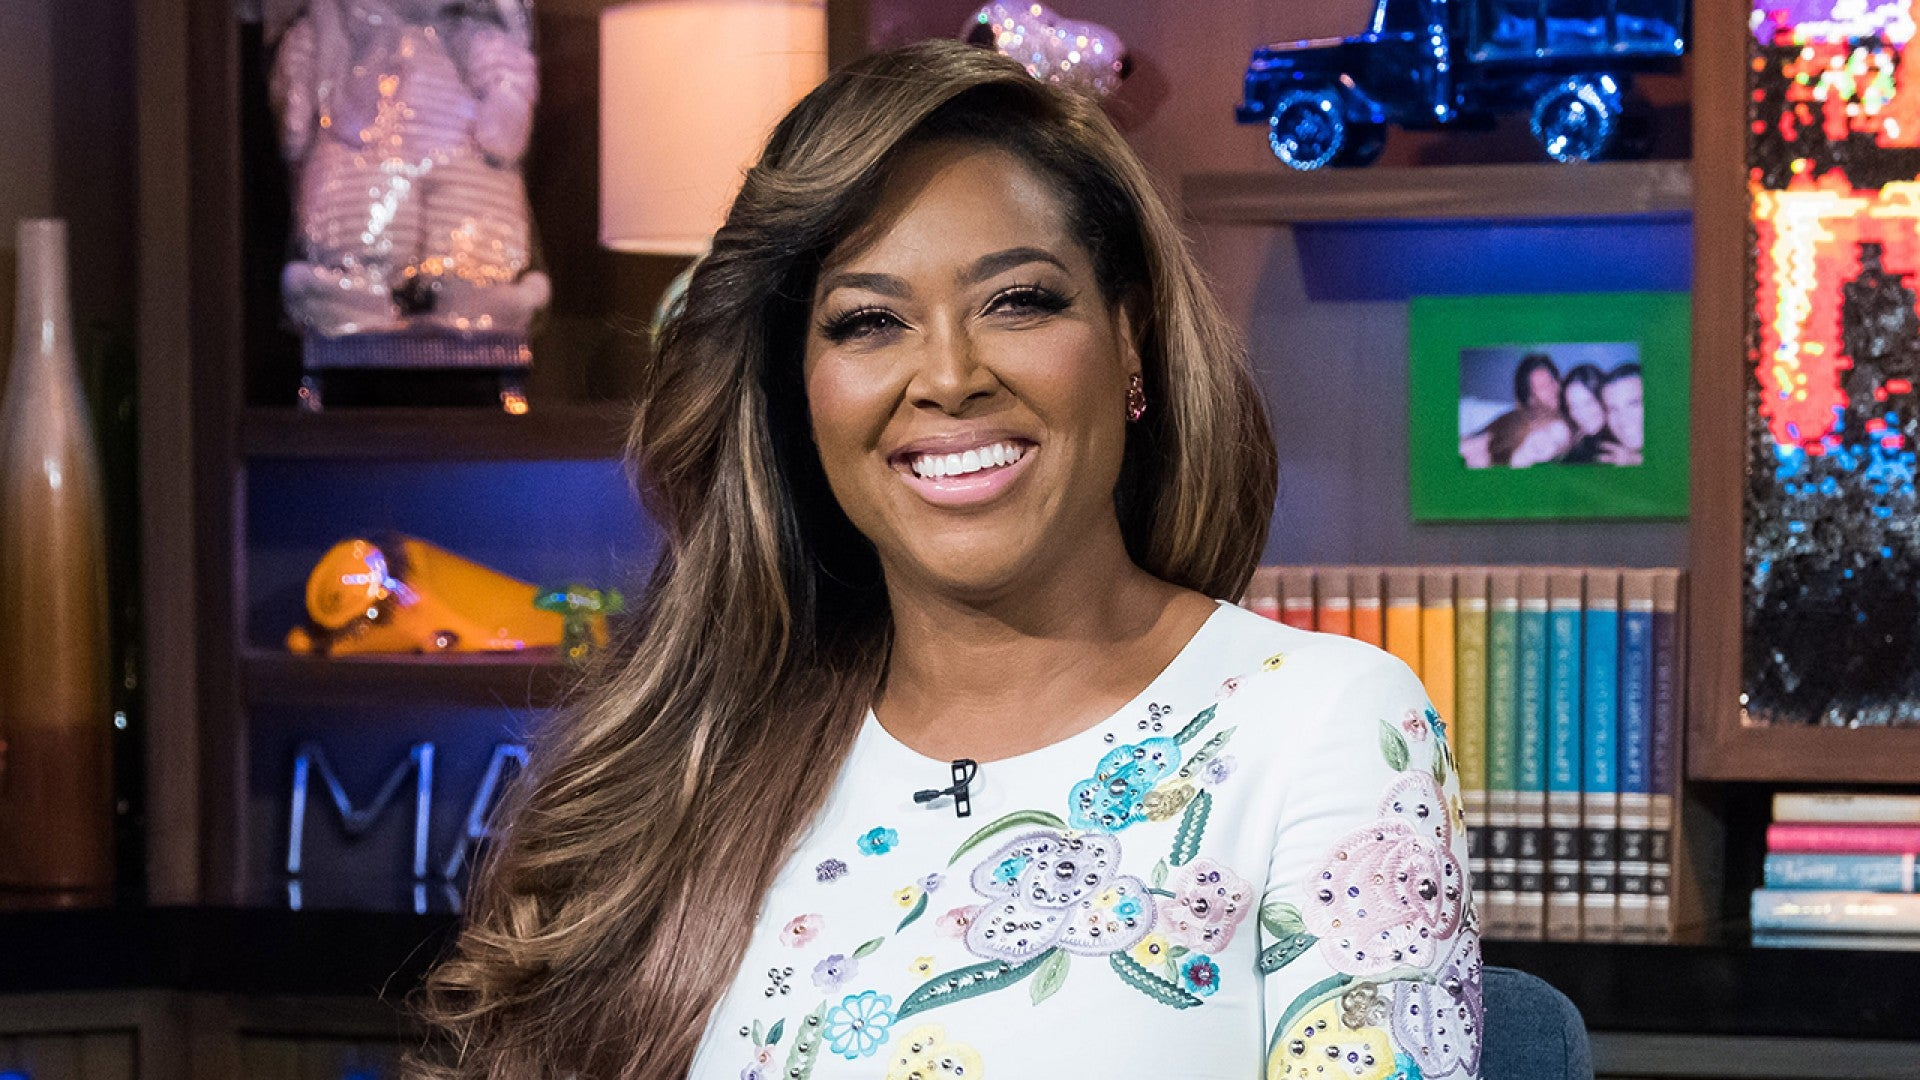 Kenya Moore Is Counting Her Blessings Inside Her Home - Check Out The Moore Manor